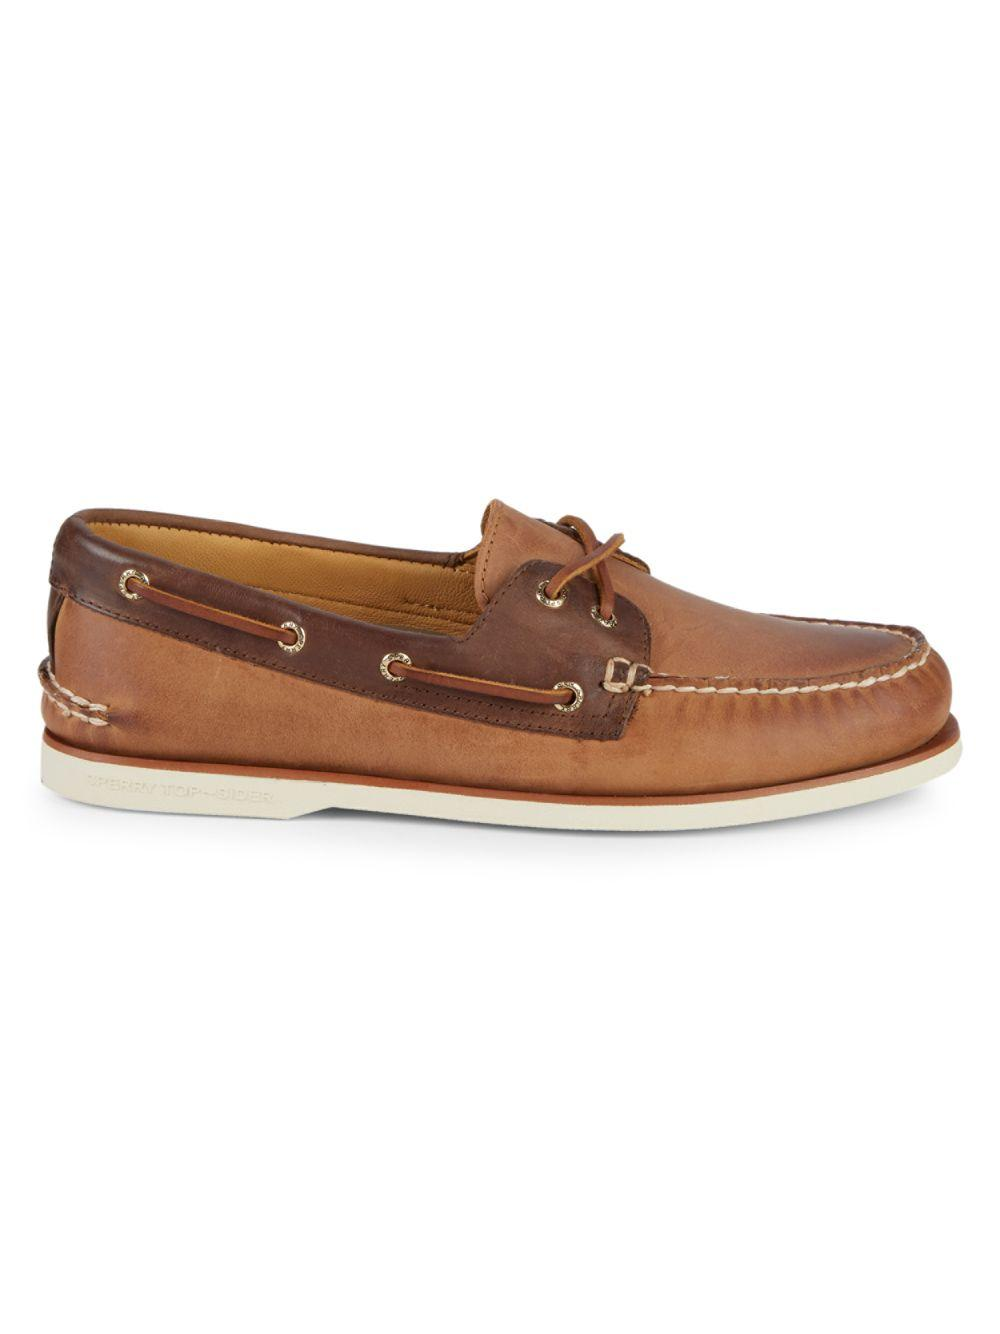 94febccc12 Sperry Top-Sider. Men s Brown Gold Cup Authentic Original Leather Boat Shoes